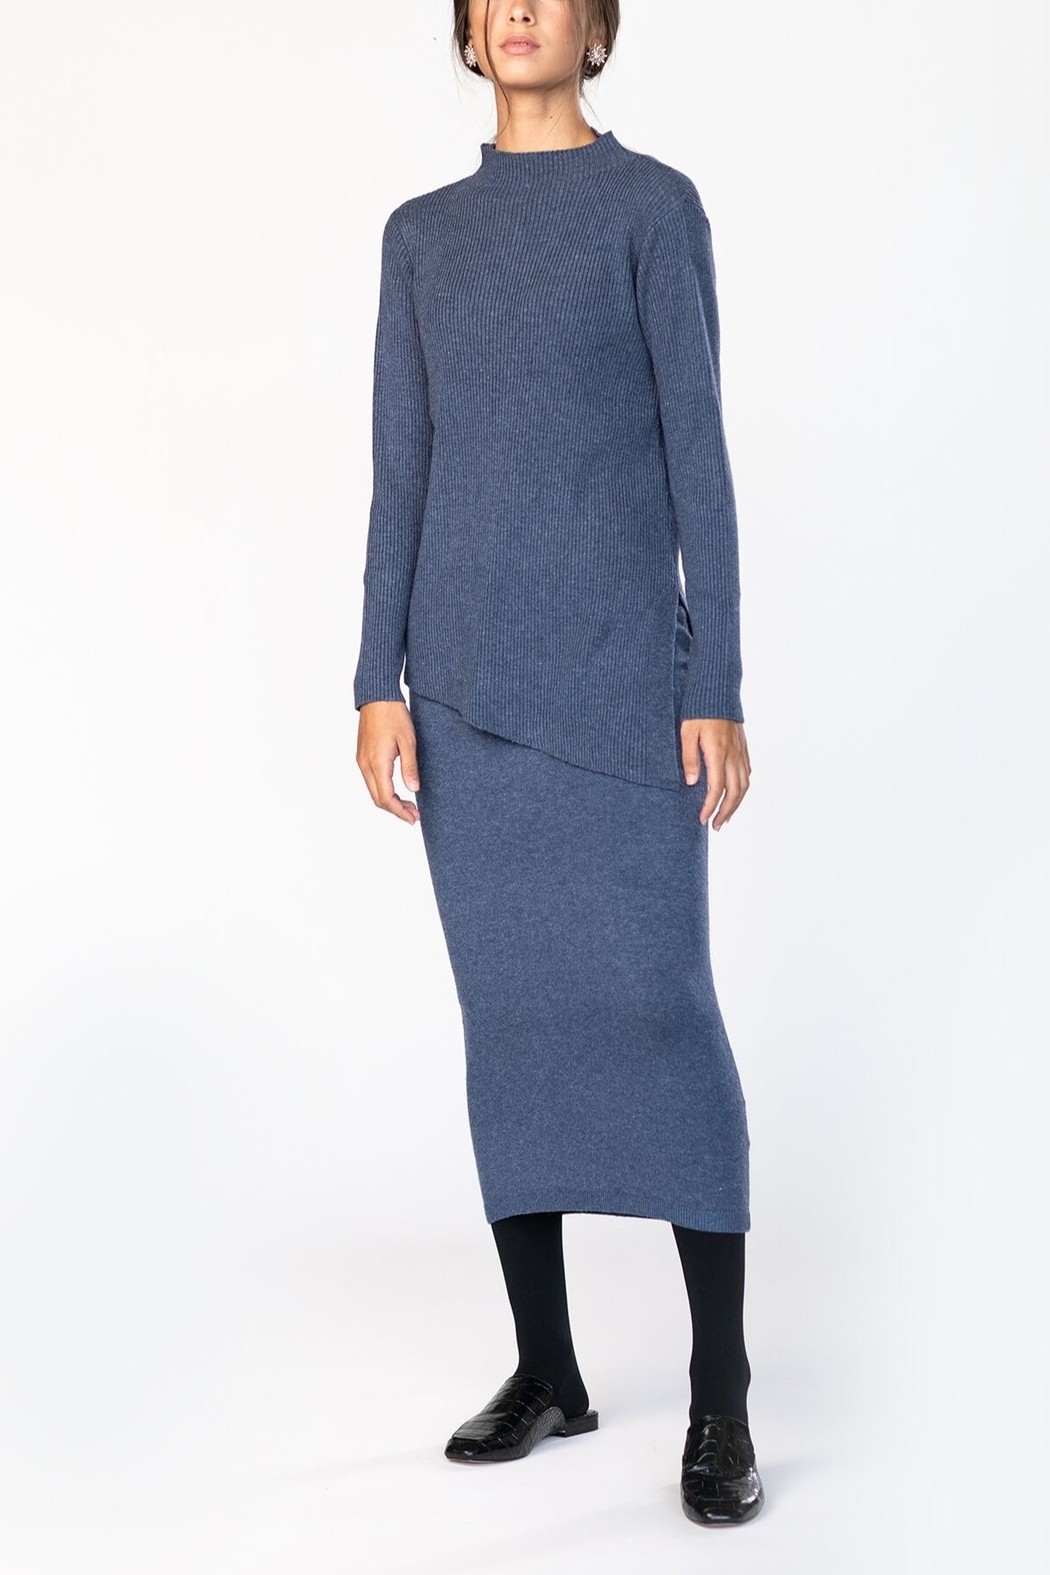 Meli by FAME RIBBED DIAGONAL SWEATER - Front Cropped Image